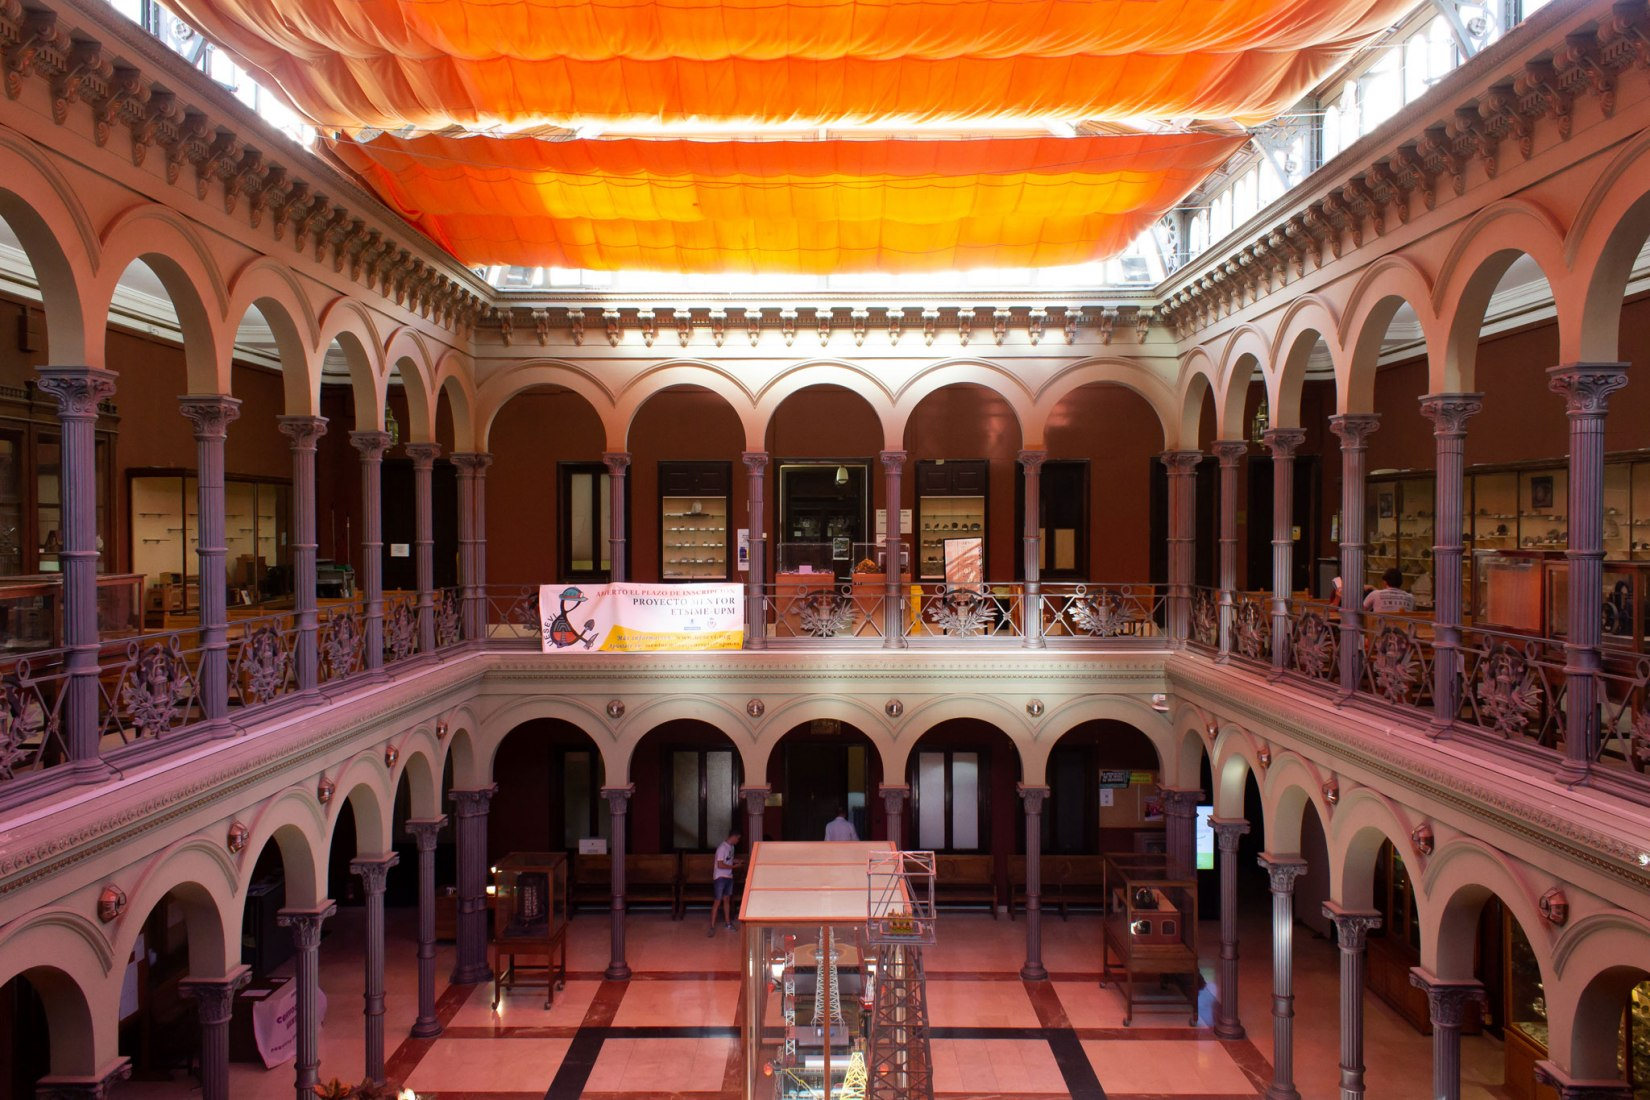 Interior view of historic building. The Higher Technical School of Mining and Energy Engineers of the UPM, new addition in the 4th edition of Open House Madrid. Photograph by Judit Otero / METALOCUS